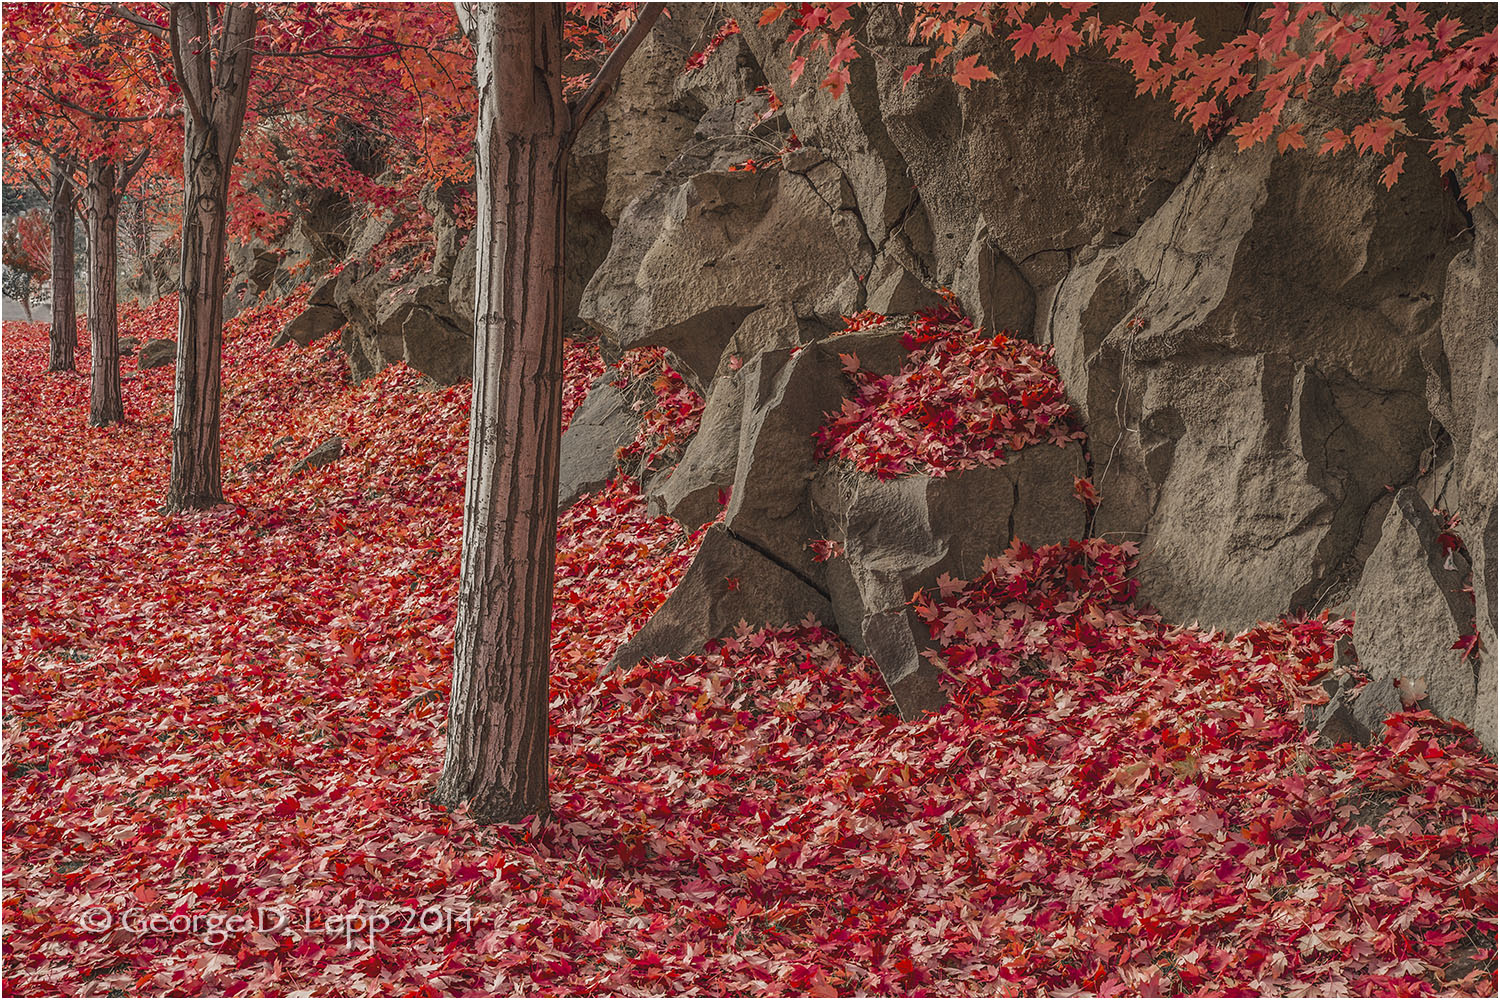 Fall colors along a Bend, OR, street. © George D. Lepp 2012 LO-CE-BE-0008